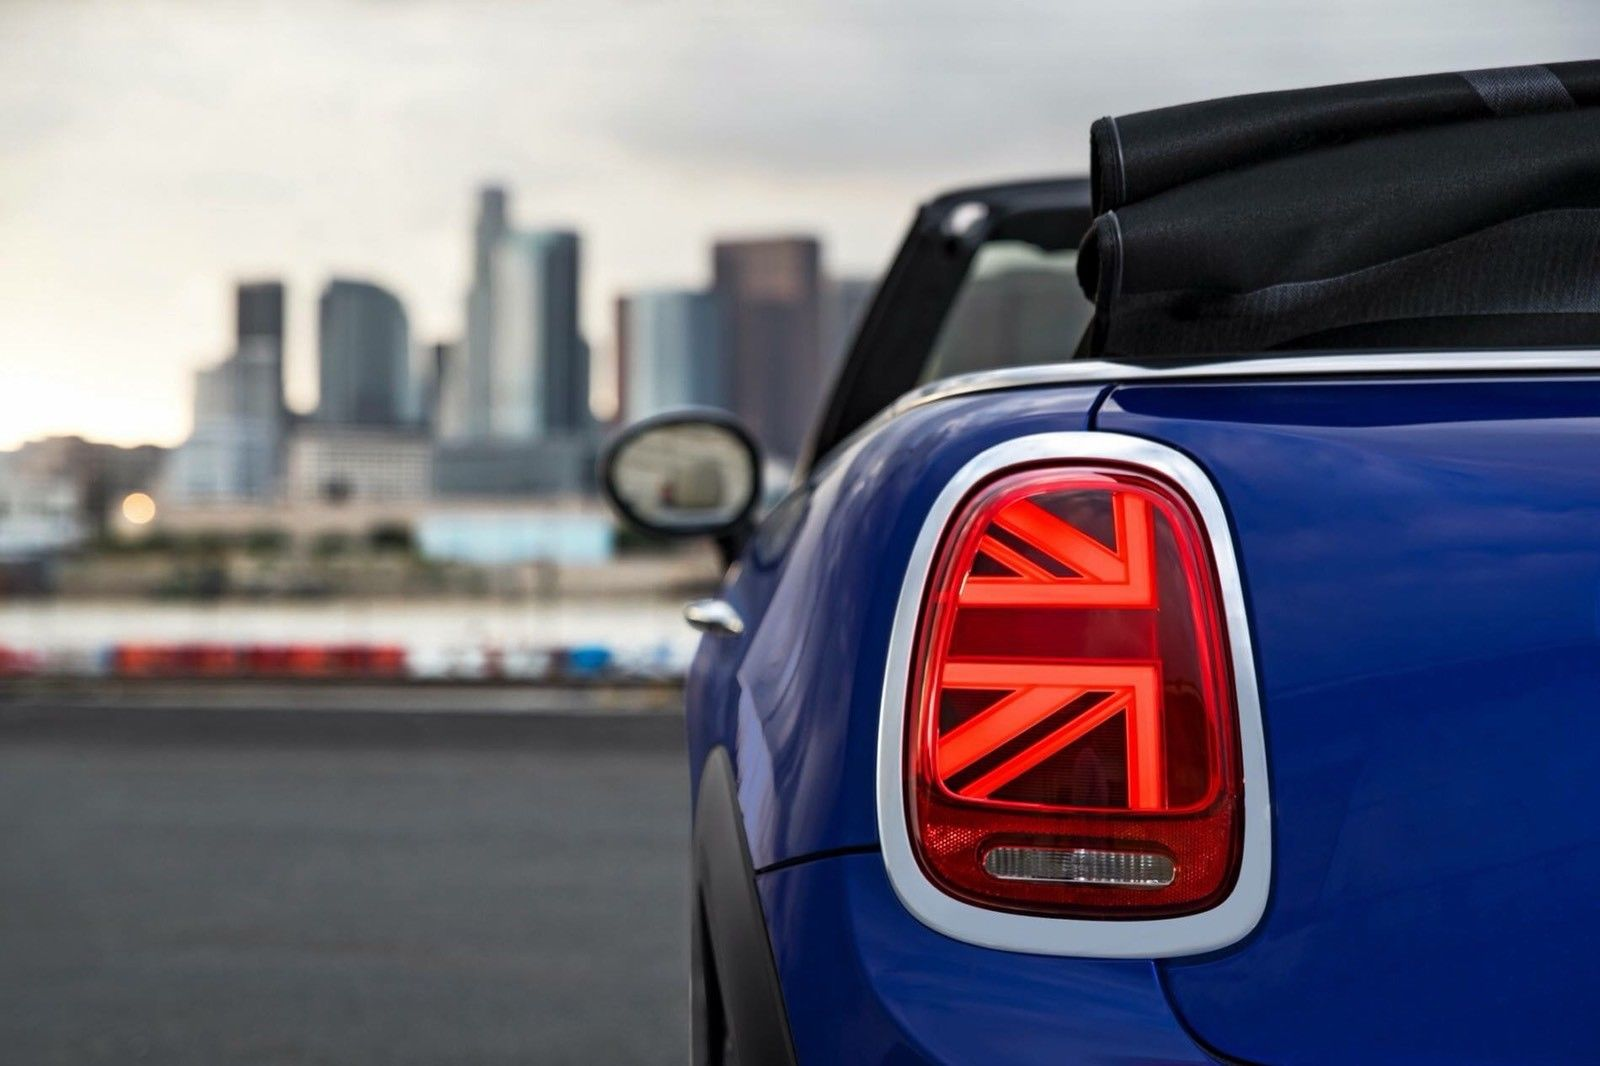 Details About Bmw Mini Oem Uk Union Jack Led Taillights Set Cooper S Jcw One F55 F56 F57